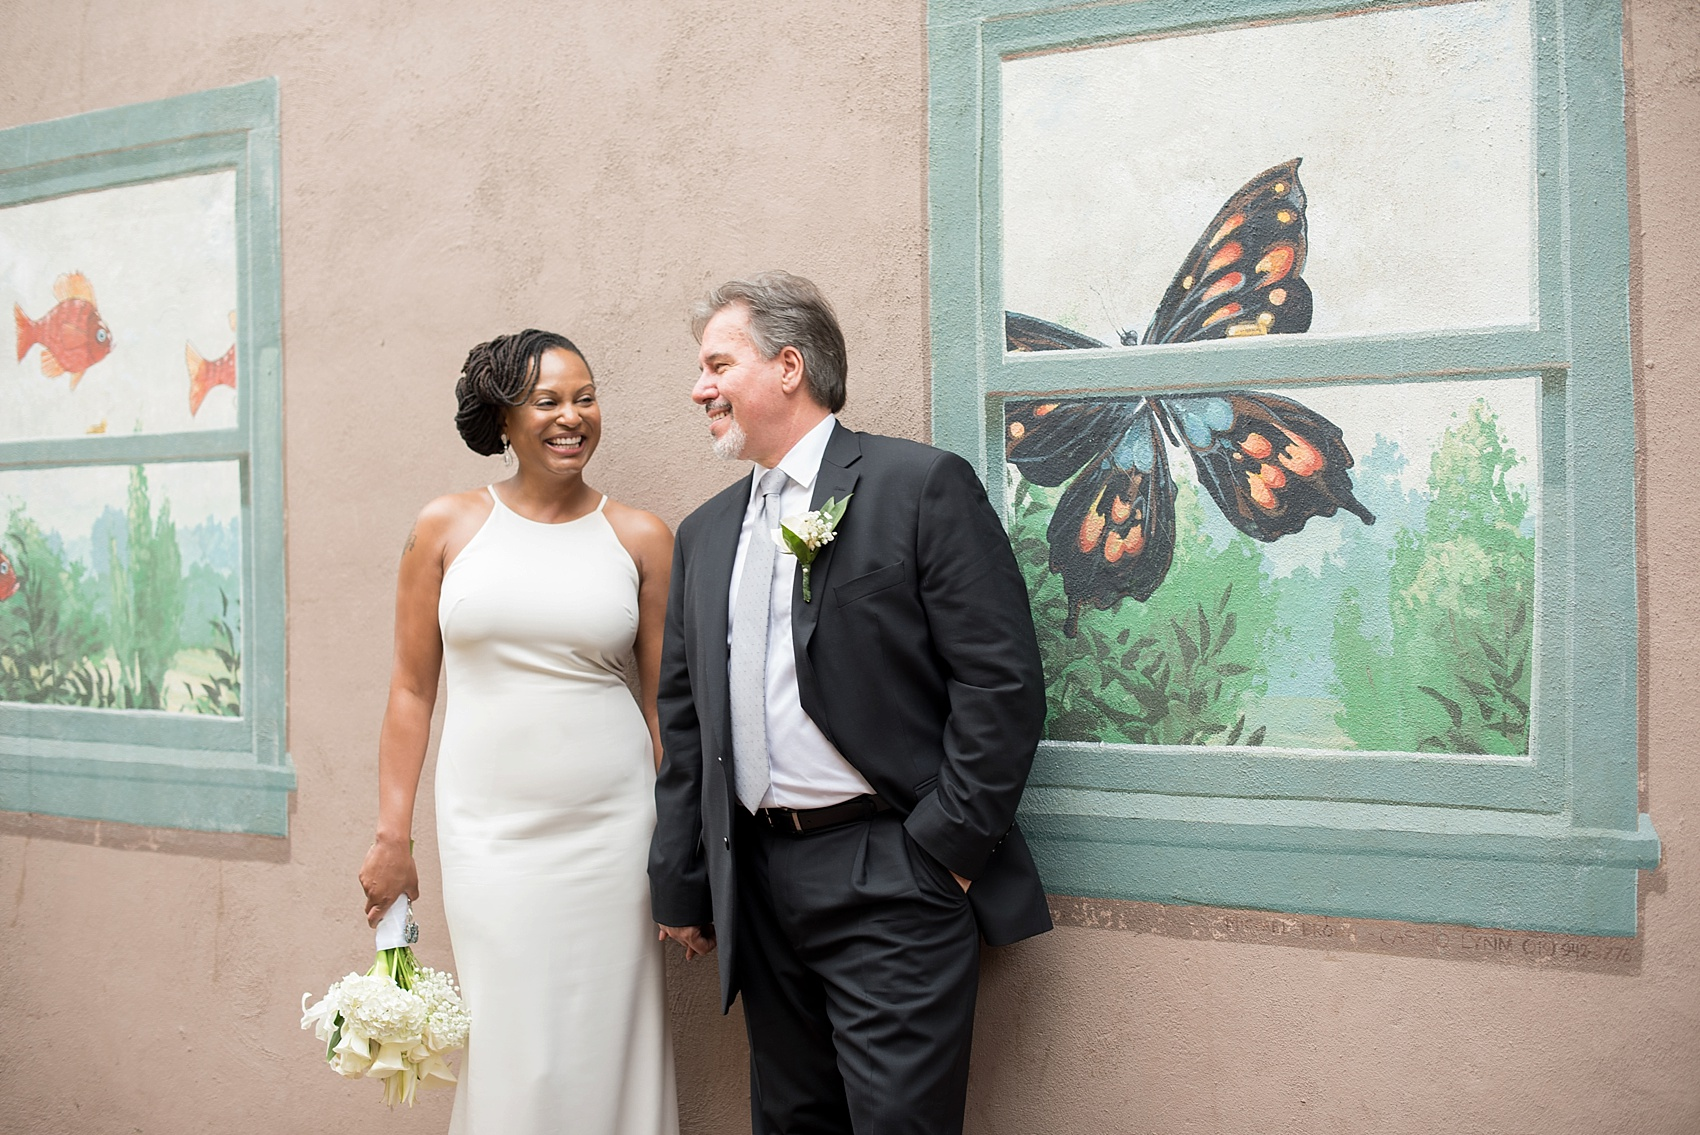 Downtown Raleigh mixed race wedding. Photos by Mikkel Paige Photography. Photos of the bride and groom.